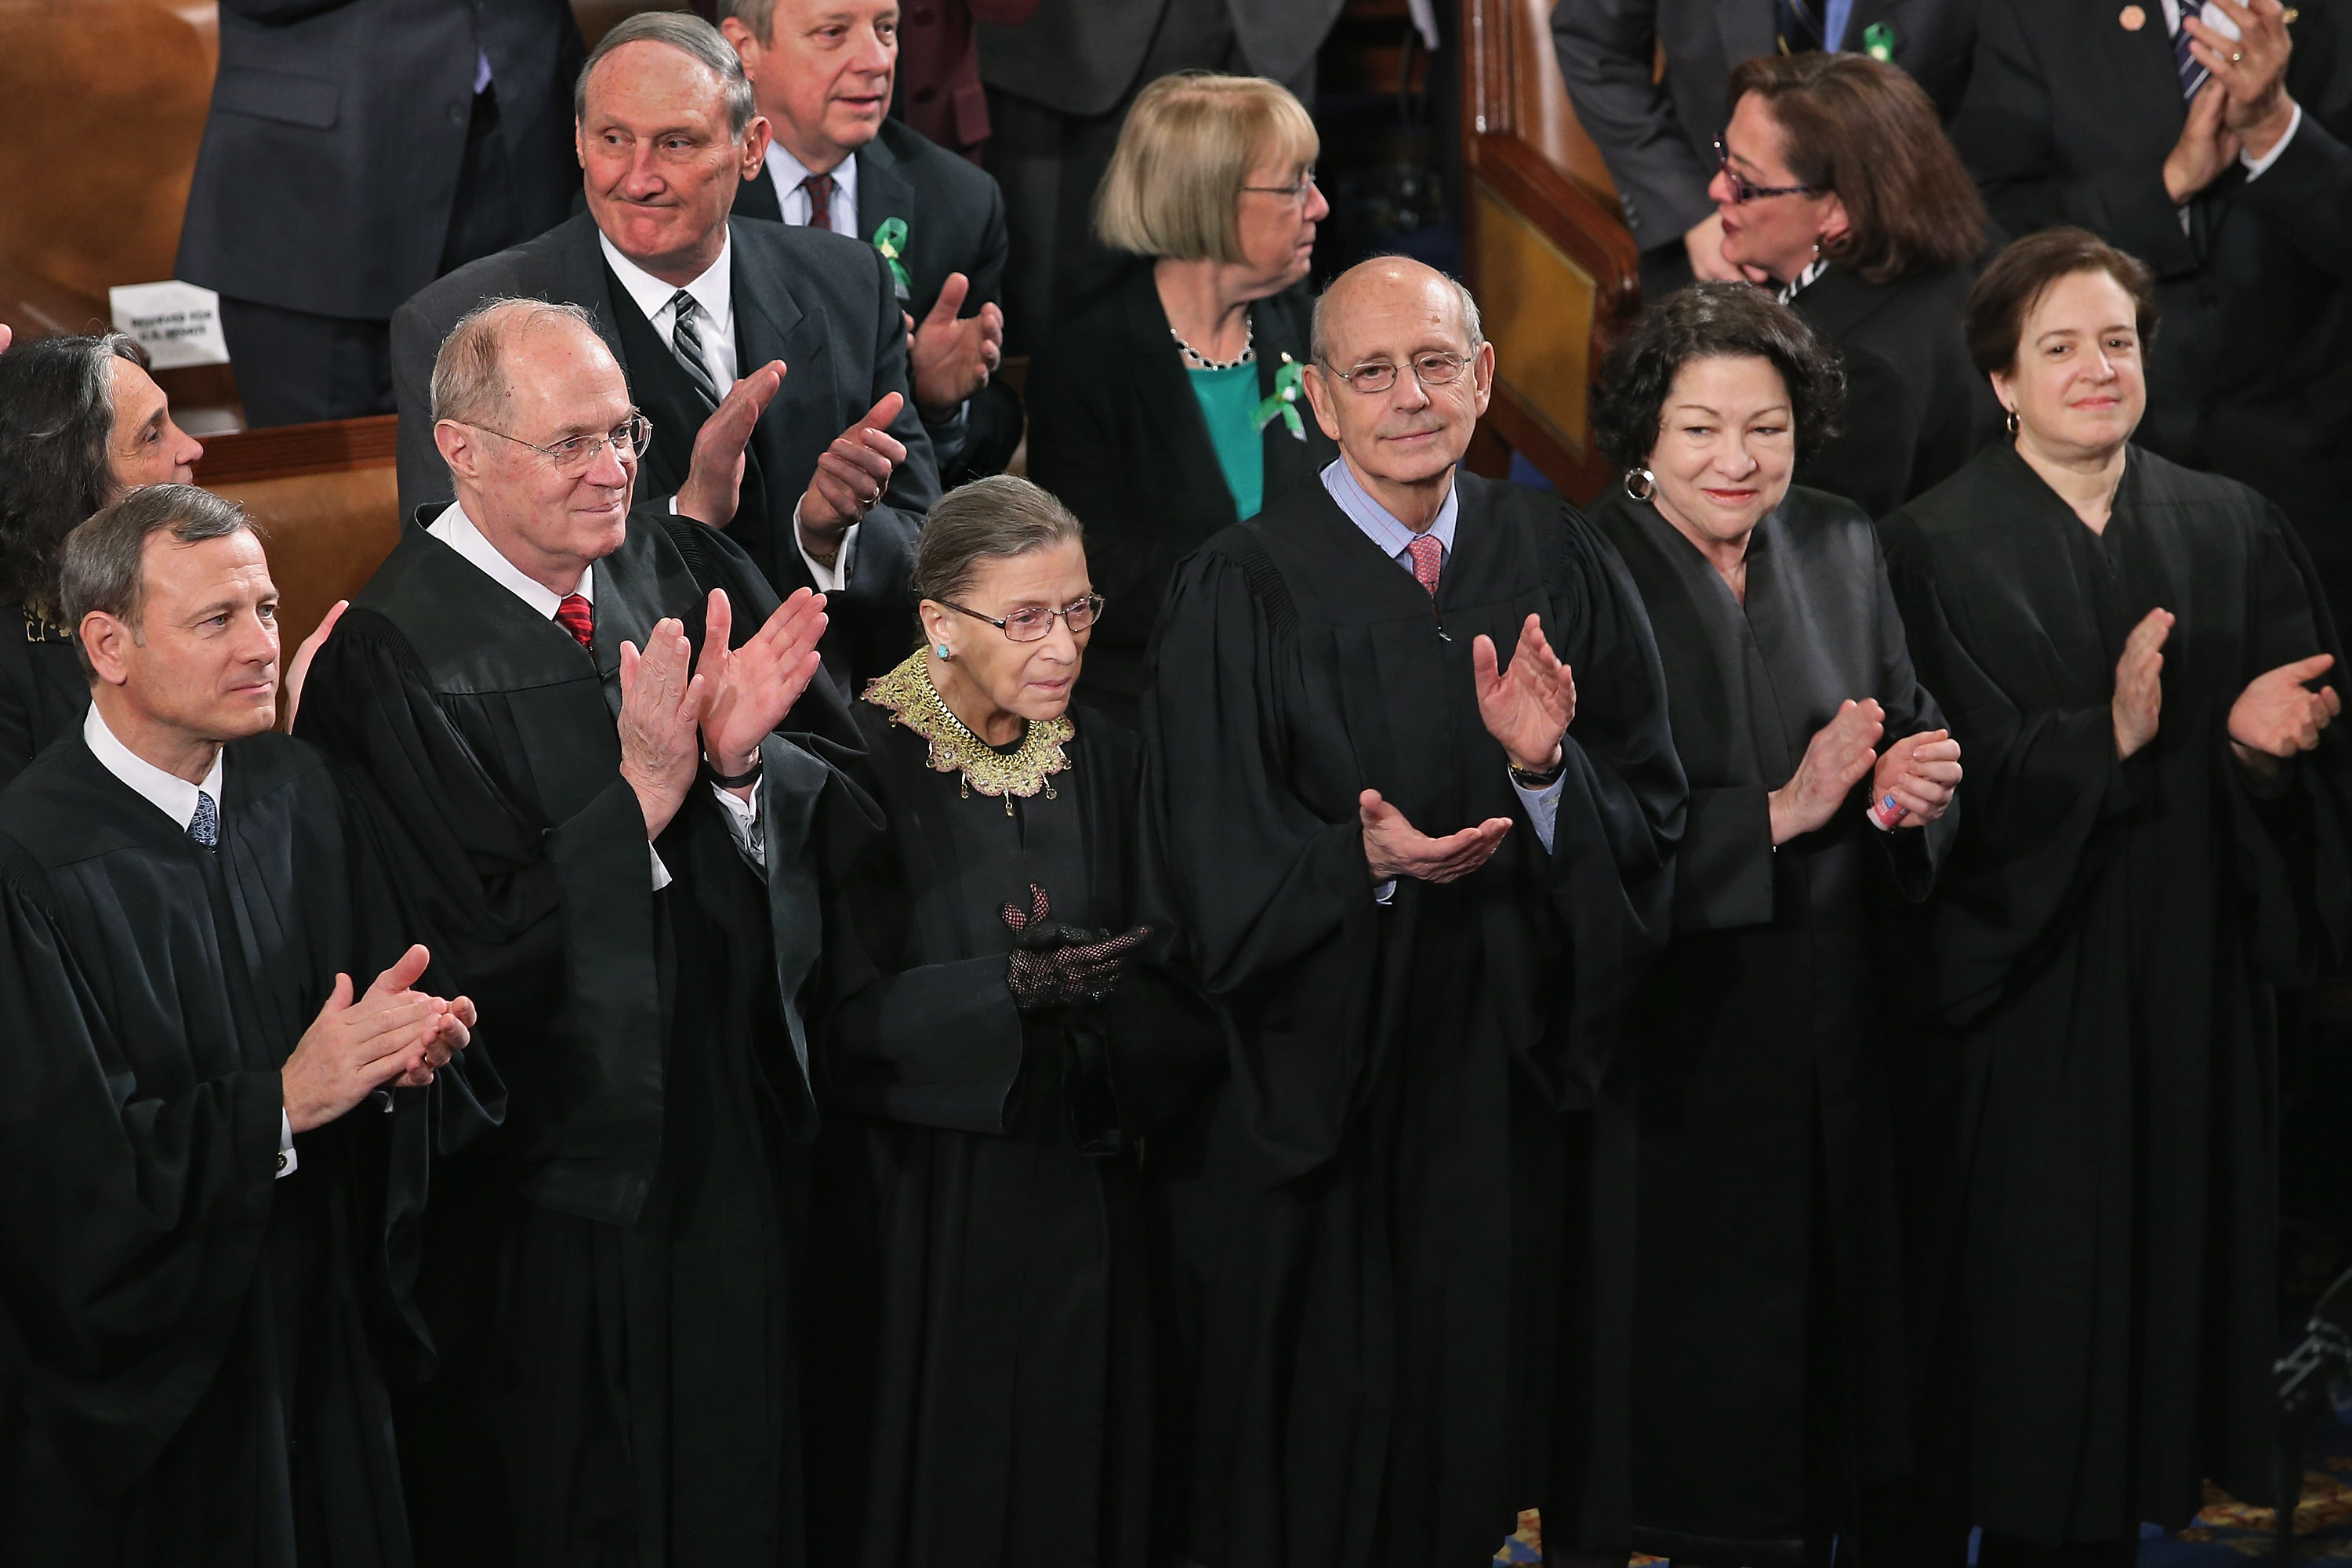 Members of the Supreme Court, (L-R) Chief Justice John Roberts and associate justices Anthony Kennendy, Ruth Bader Ginsburg, John Paul Stevens, Sonia Sotomayor and Elena Kagan, applaud as U.S. President Barack Obama arrives to deliver his State of the Union speech before a joint session of Congress at the U.S. Capitol in Washington on February 12, 2013.